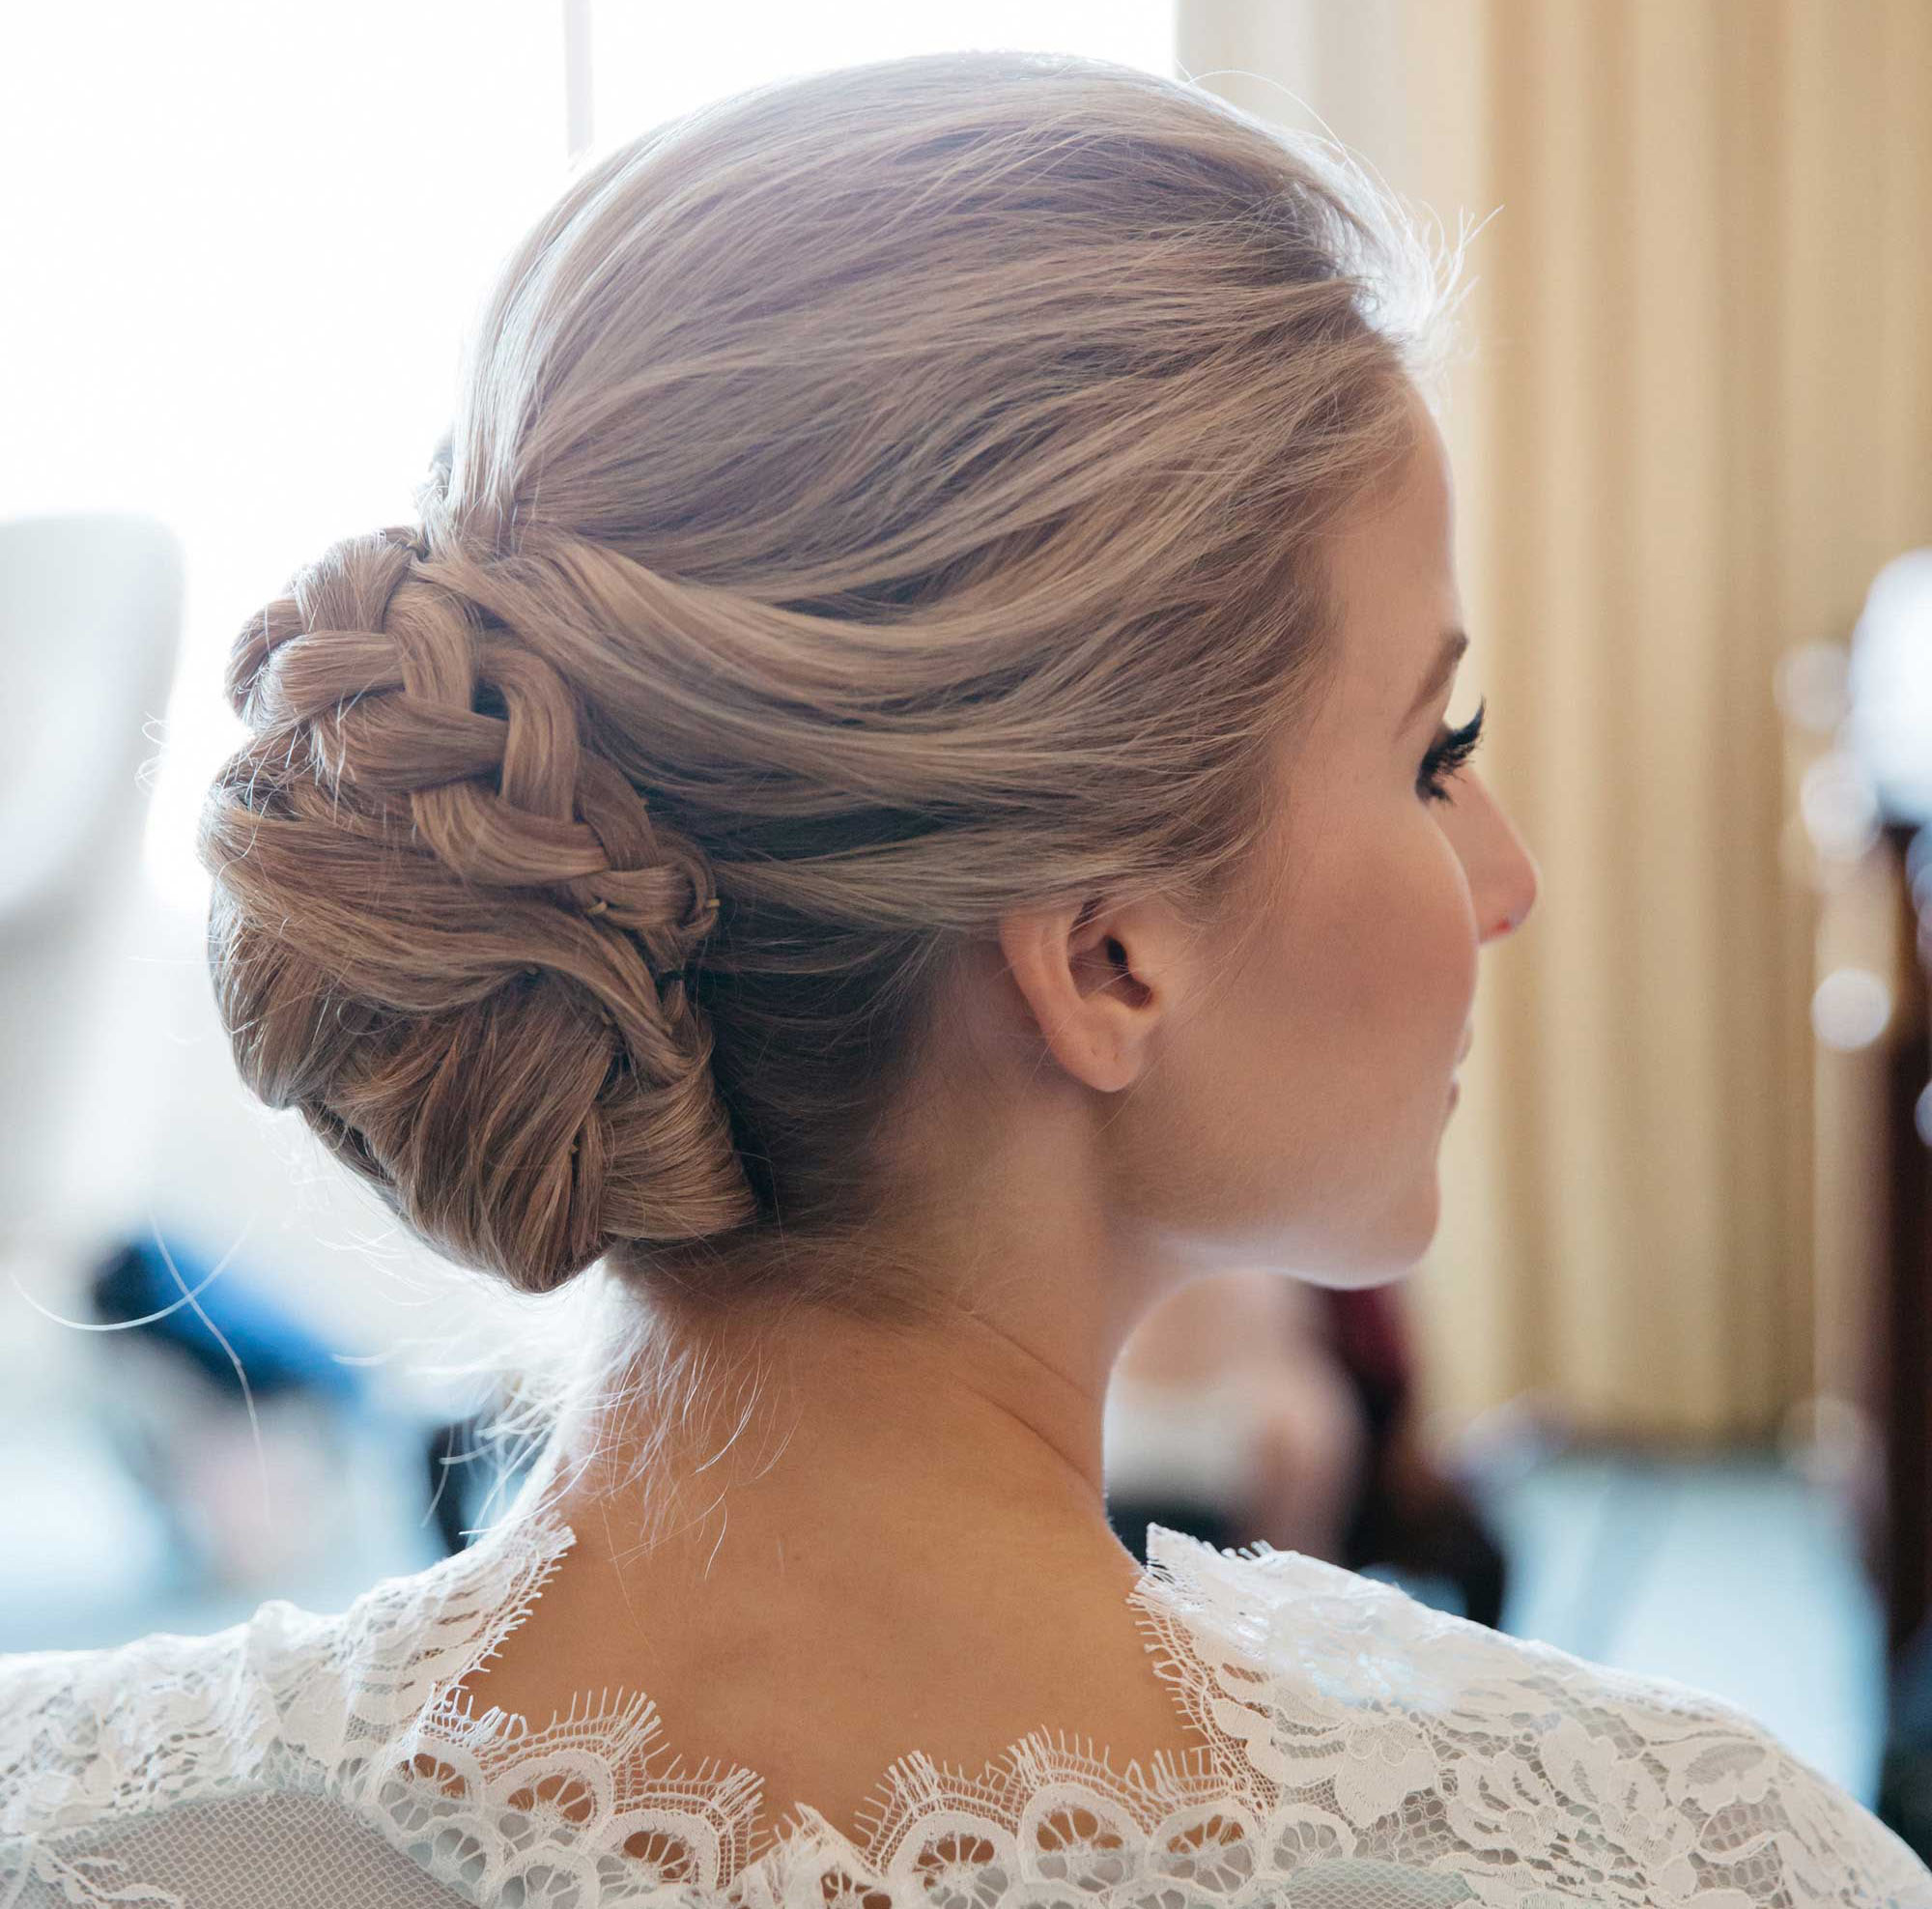 Astonishing Braided Hairstyles 5 Ideas For Your Wedding Look Inside Weddings Short Hairstyles Gunalazisus